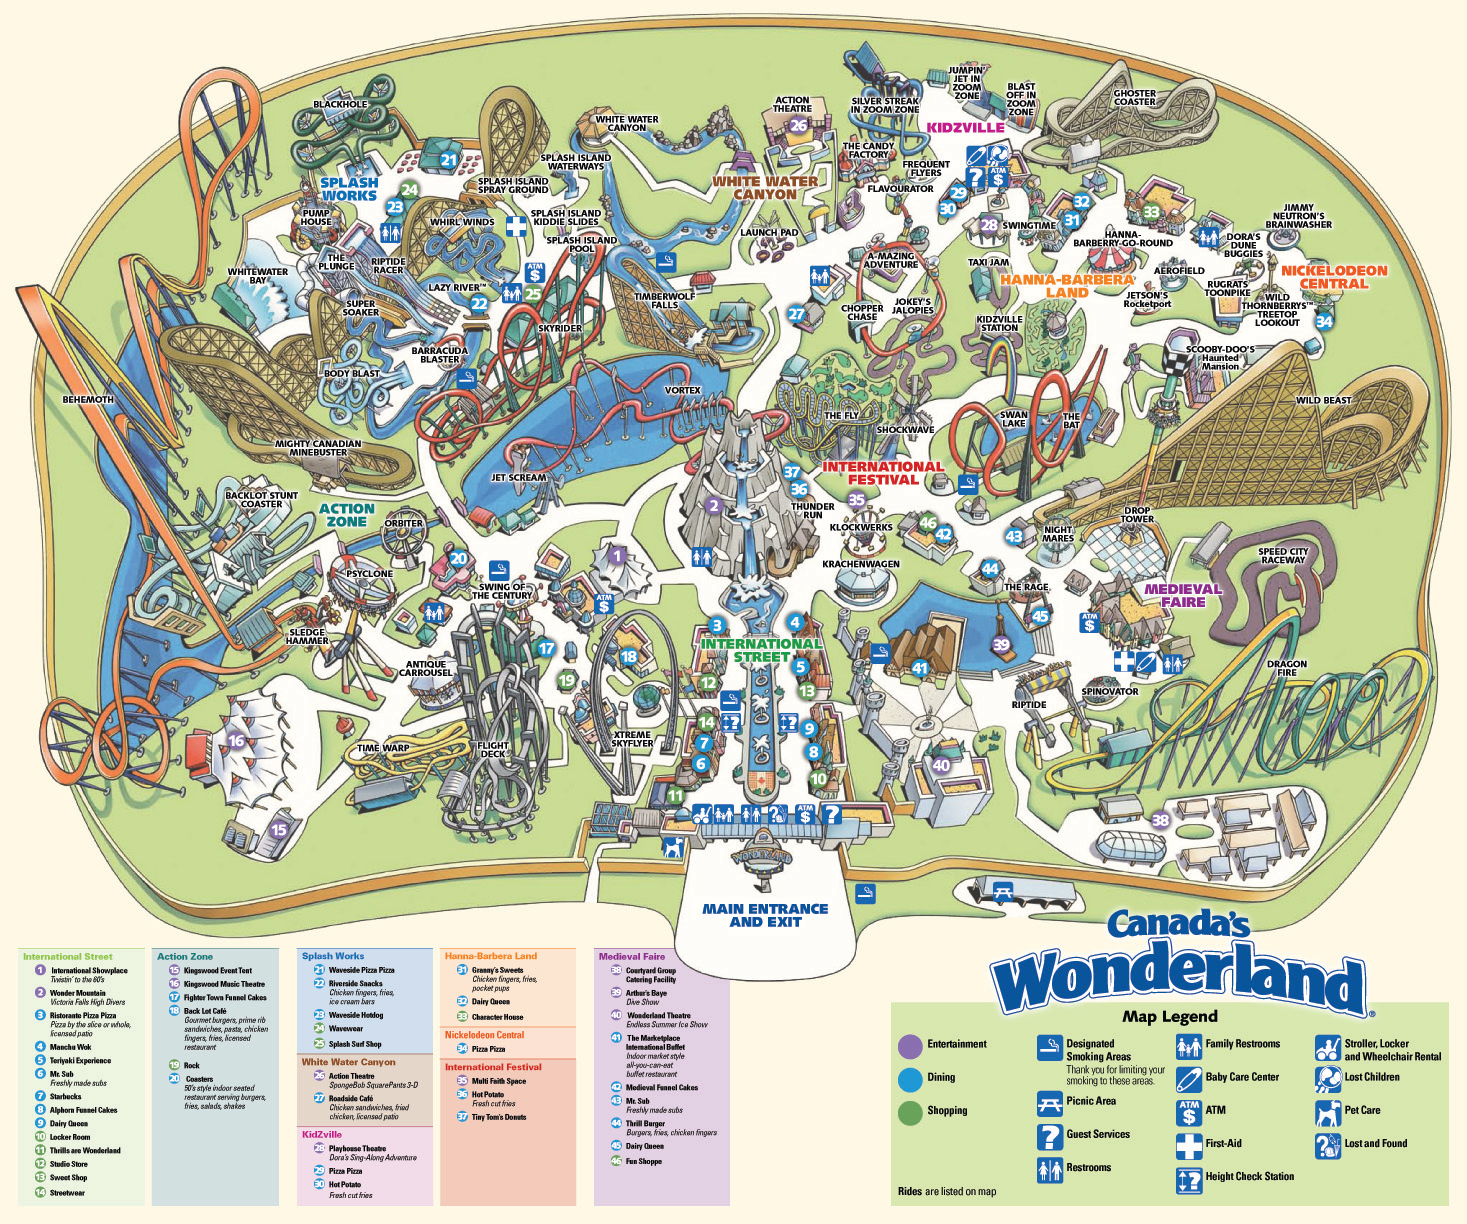 Map Of Canadas Wonderland 2017.Canada S Wonderland Historical Maps Cp Food Blog